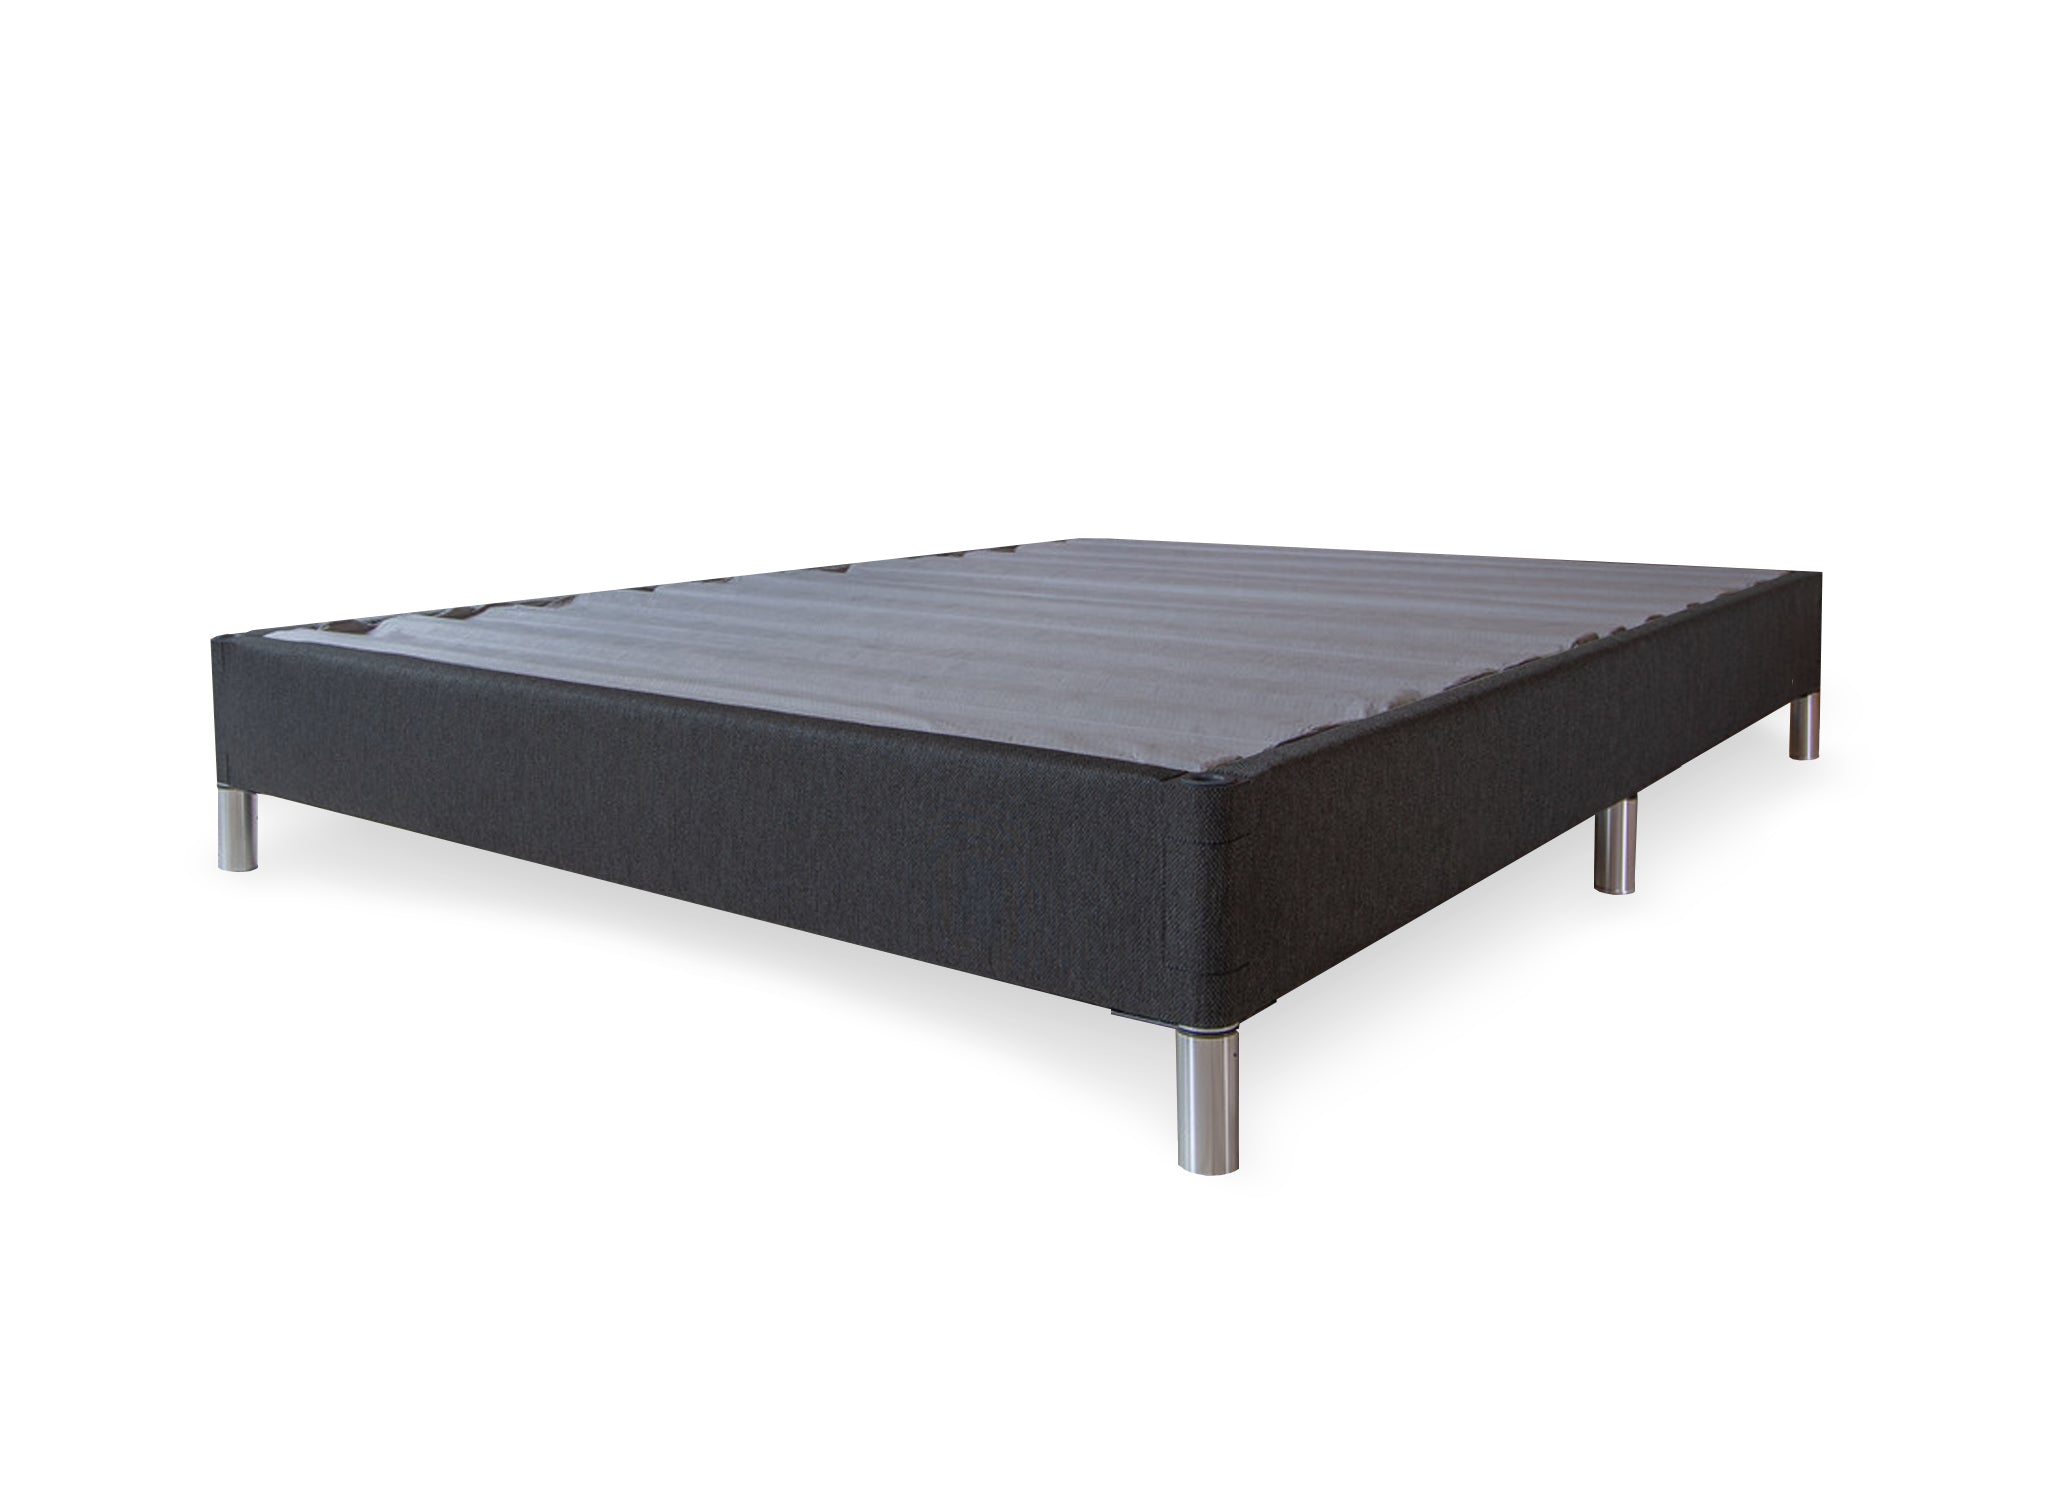 Aslan Mattress Foundation